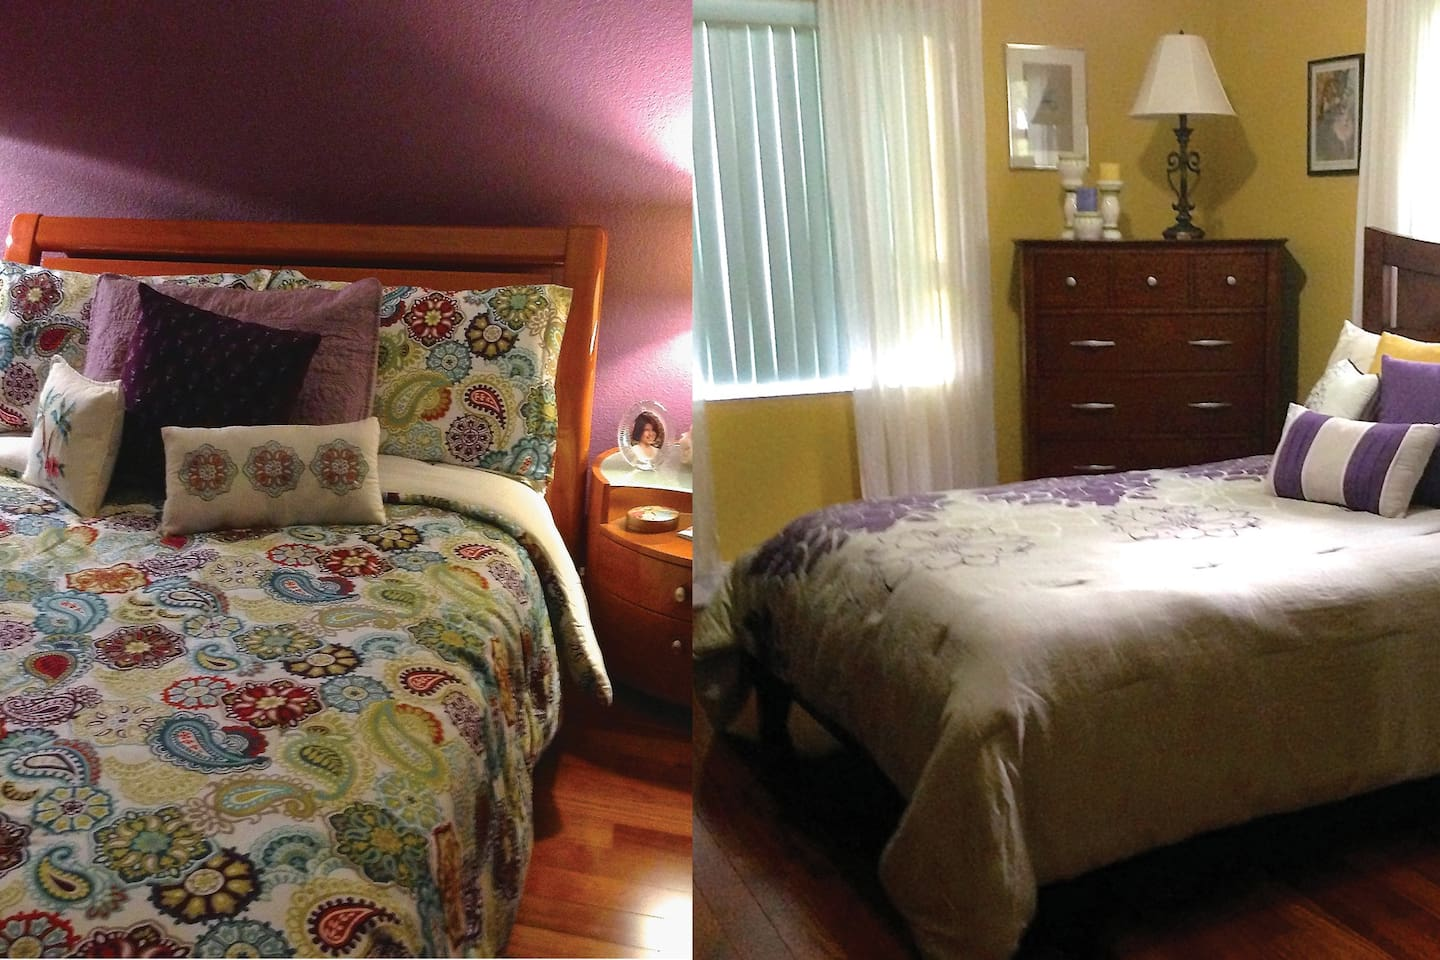 2 bedrooms next to each other - each with a full/double bed and shared bathroom